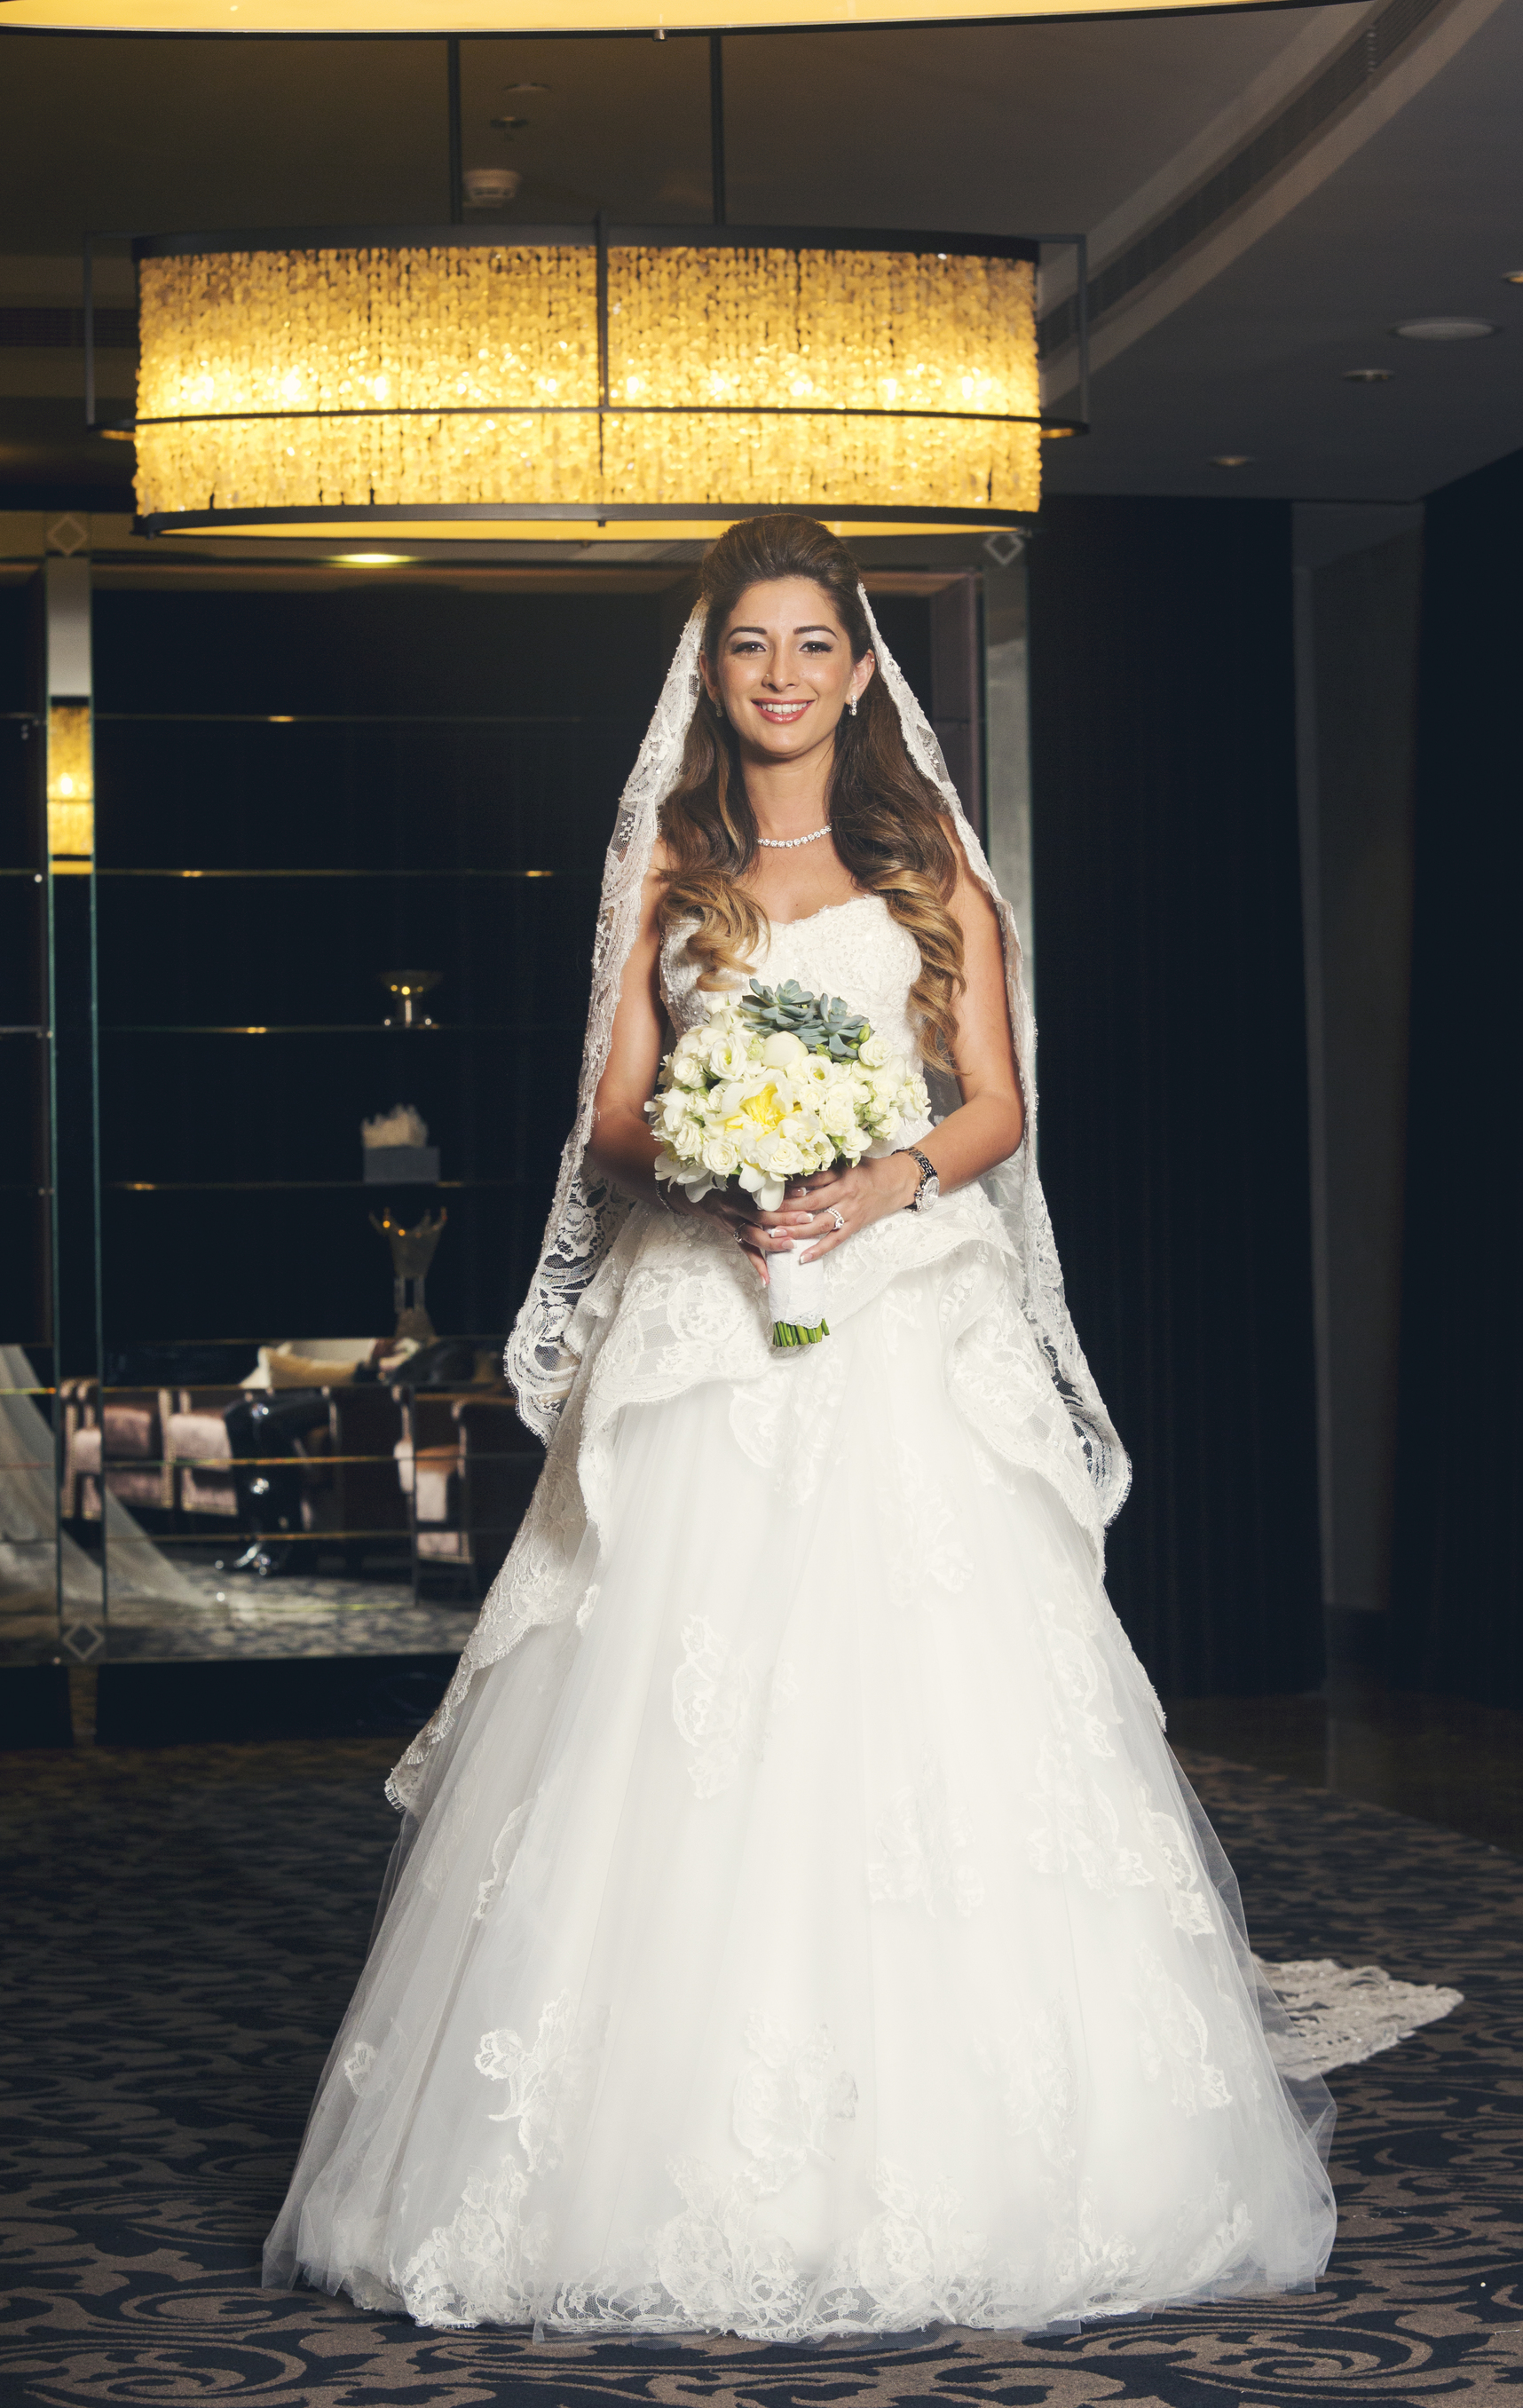 confessions of a real bride ranime loutfi arabia weddings